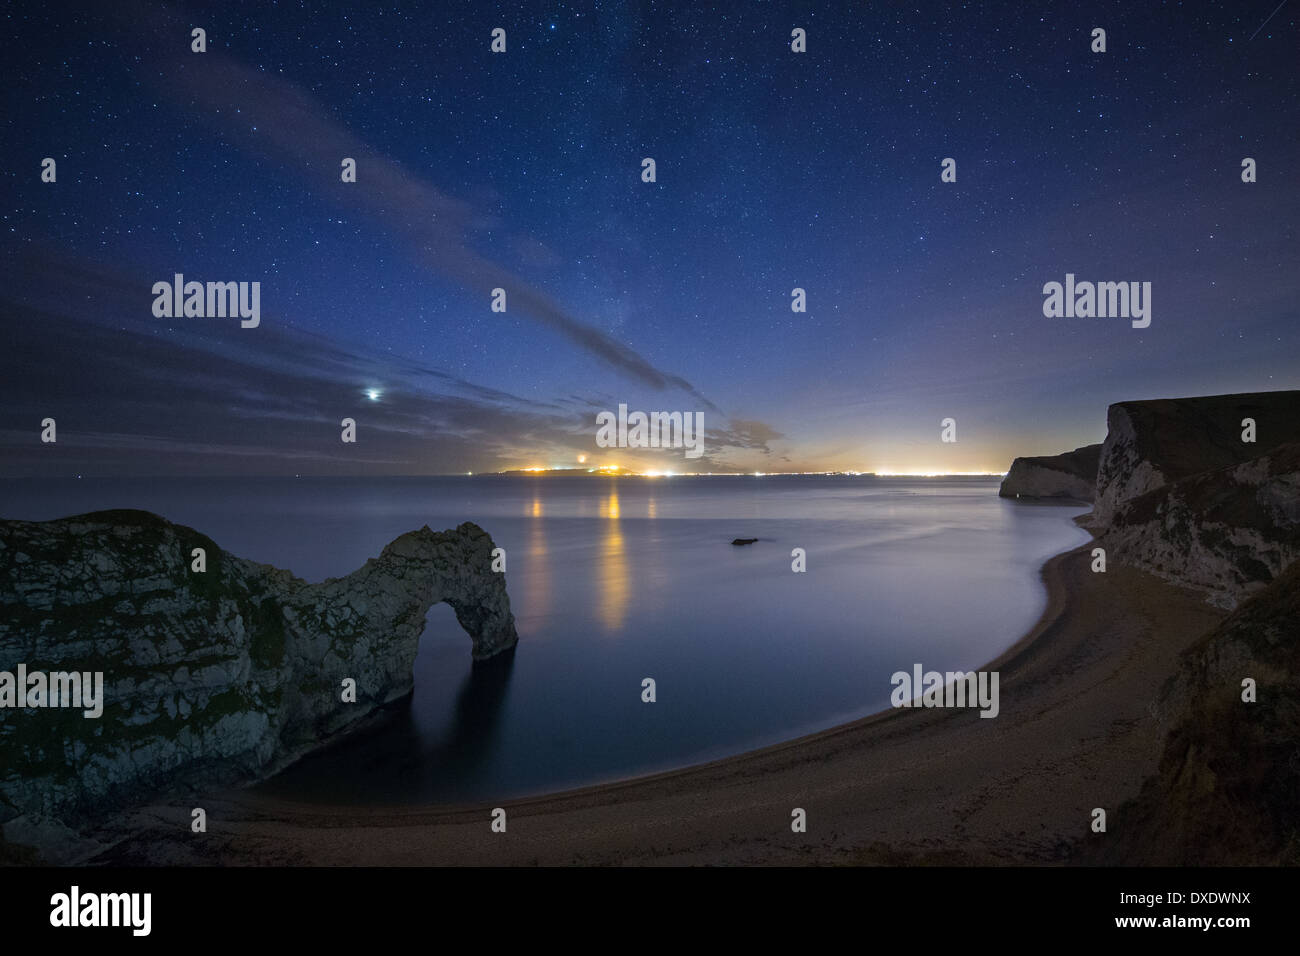 the stars and Milky Way over Durdle Door and the Jurassic Coast, with the lights of Weymouth & Portland beyond, Dorset, England - Stock Image